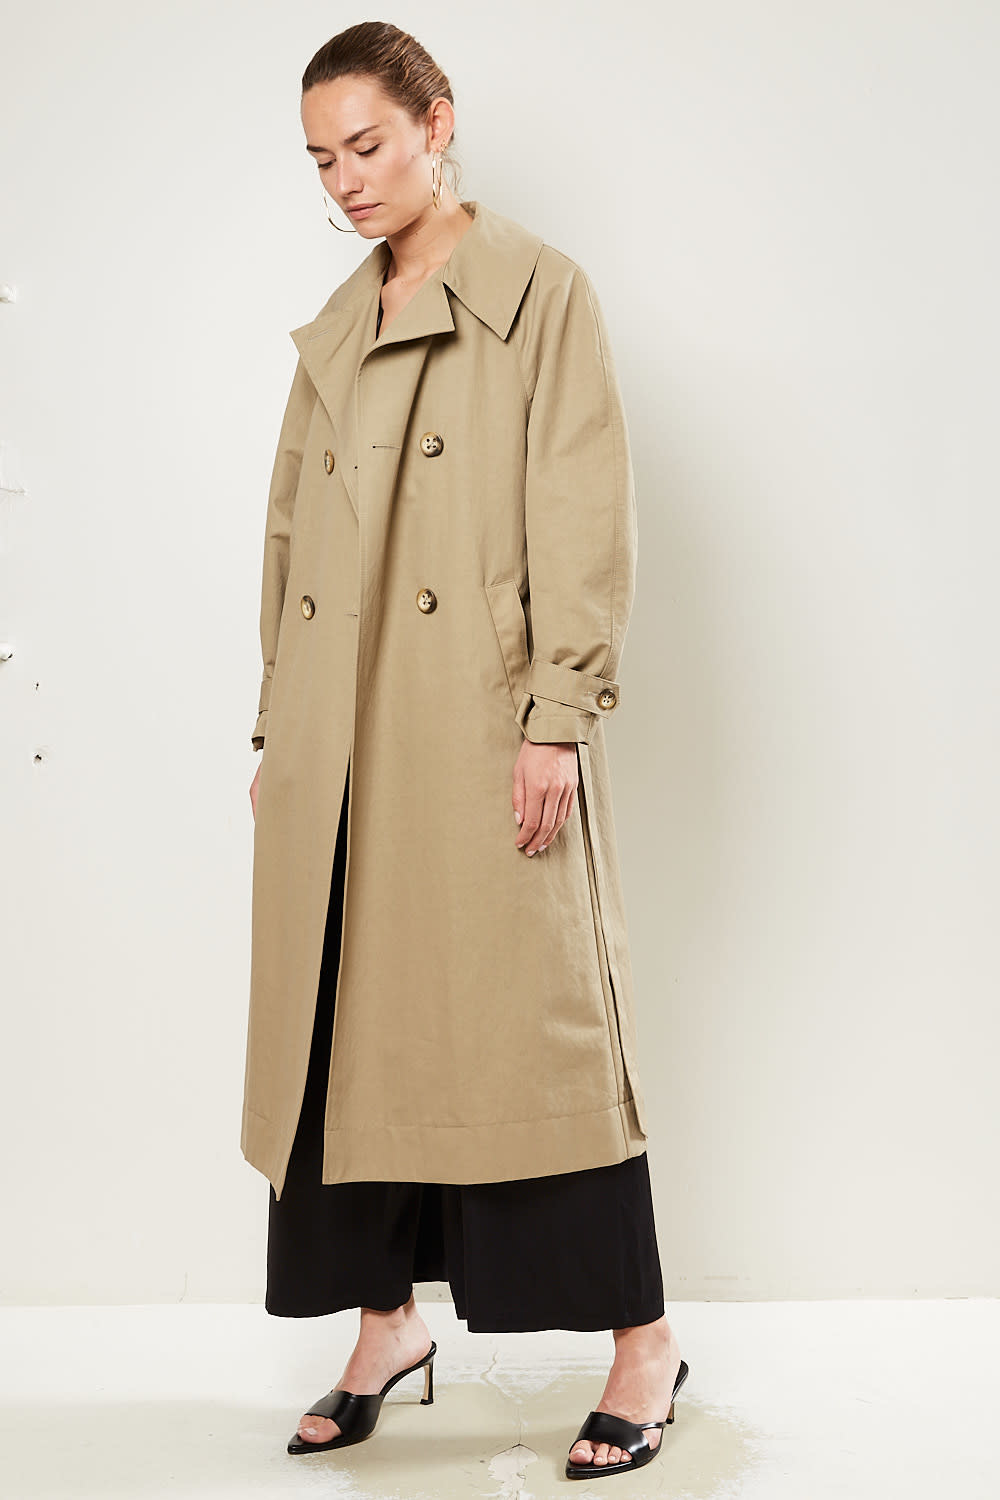 Les Coyotes de Paris - Ruby cotton blend coat